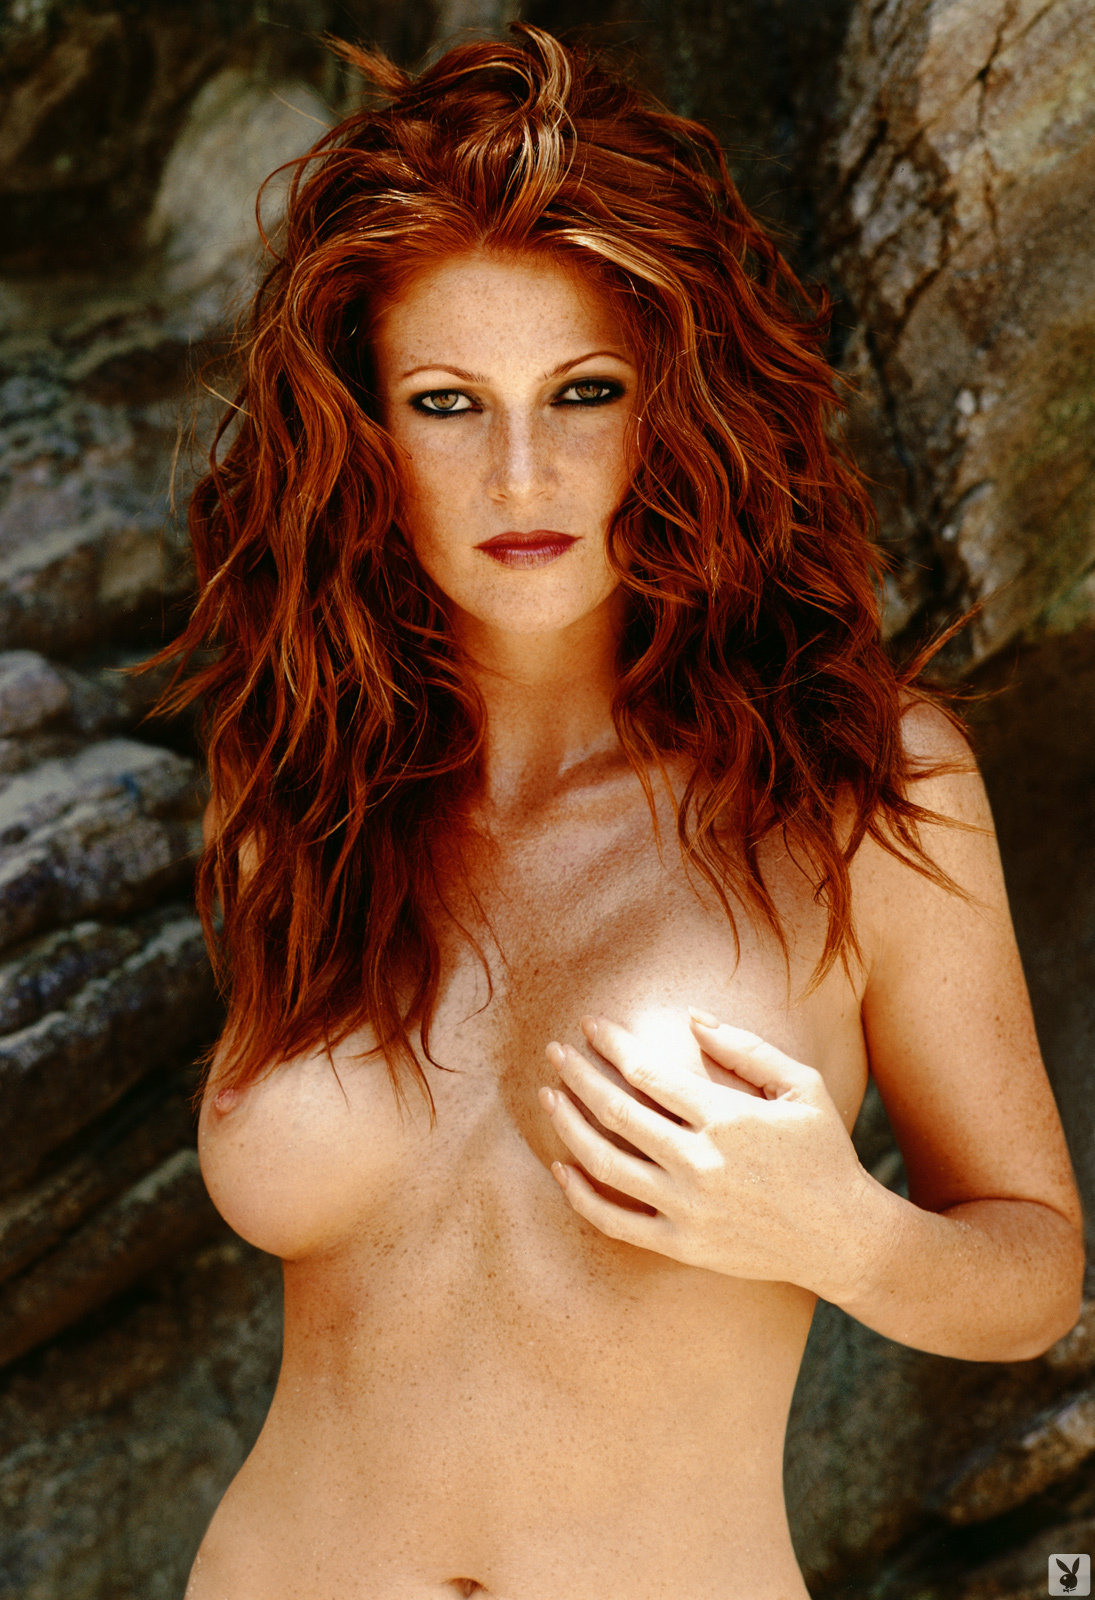 Angie Everhart Playboy super model - angie everhart - playboy plus